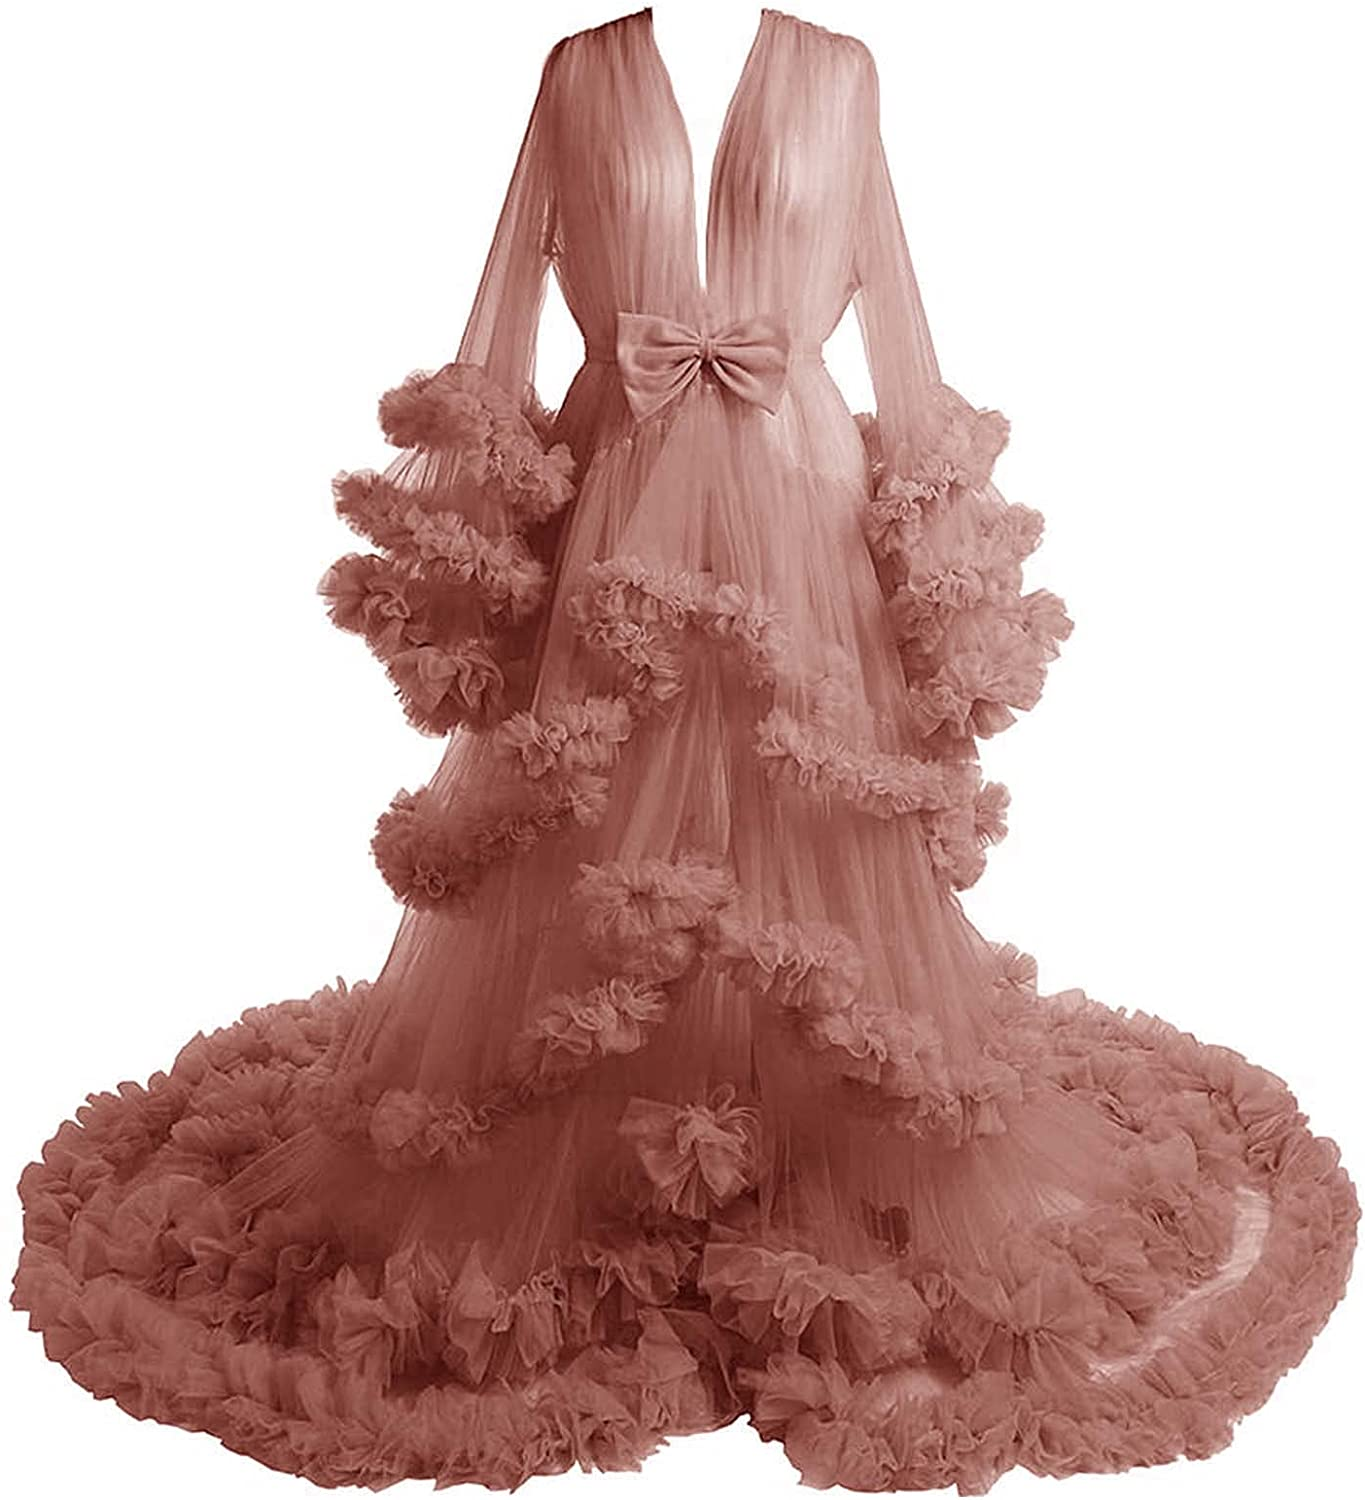 Tianzhihe Puffy Maternity Tulle Robe for Photoshoot Pregnant Dressing Gown Sheer Lingerie Nightgown